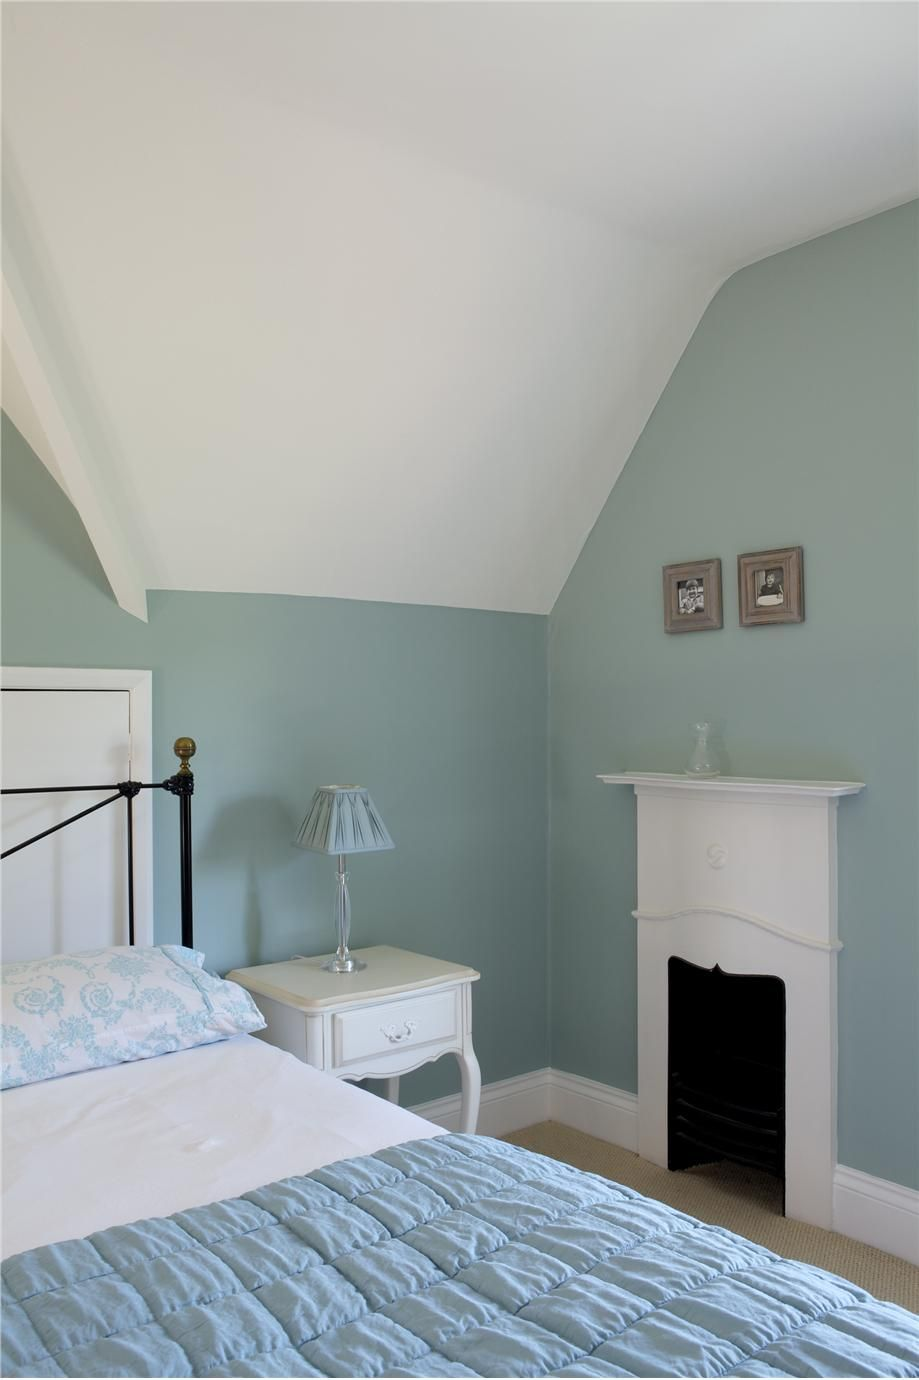 Blue and green bedroom - A Bedroom With Walls In Green Blue Estate Emulsion And Ceiling